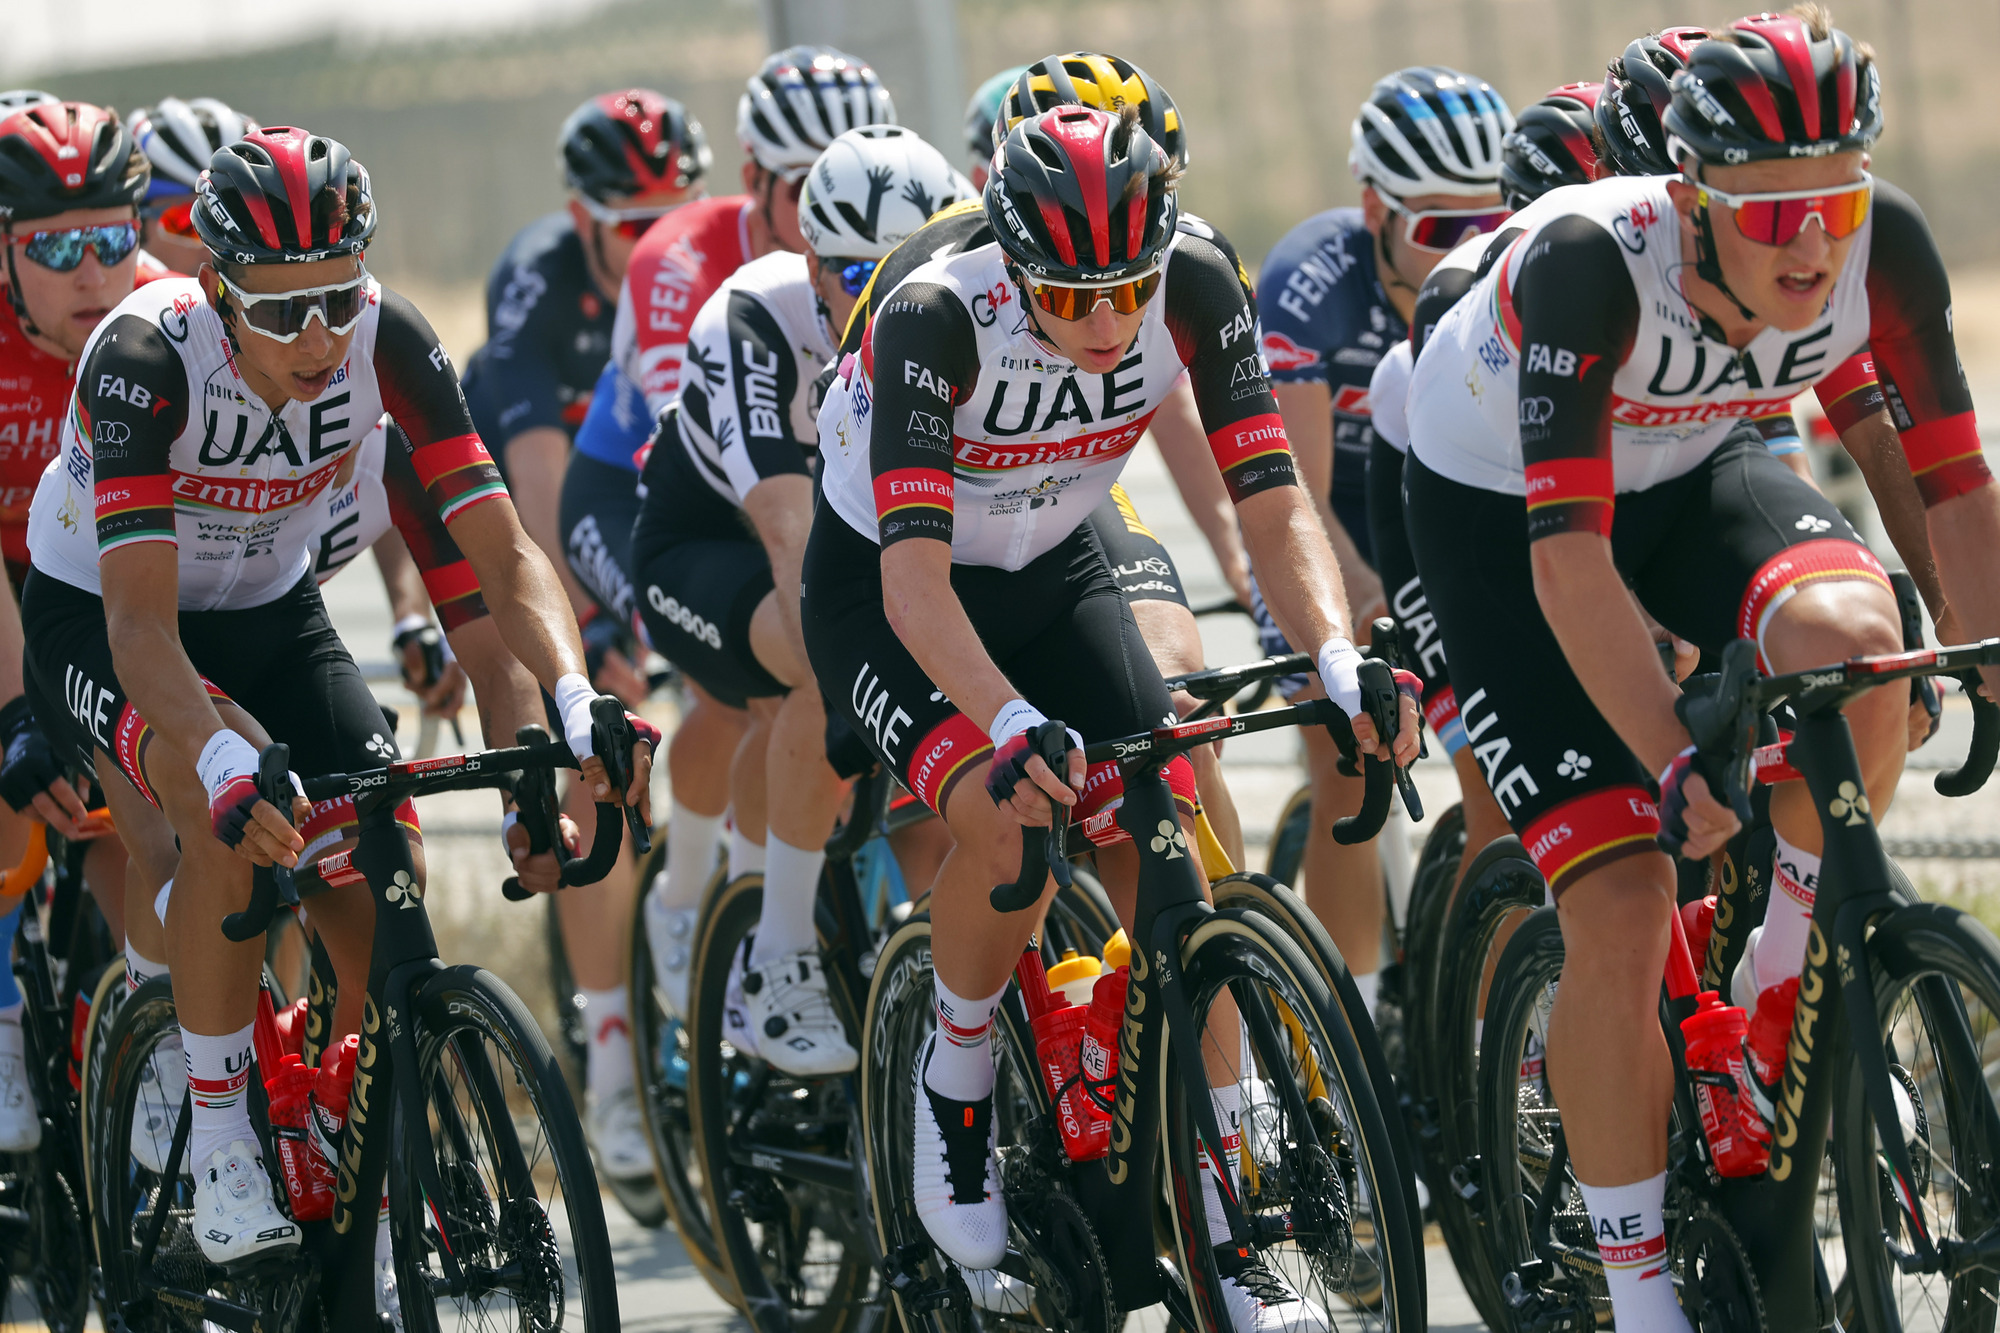 Tadej Pogacar made the front echelon on stage 1 of the UAE Tour